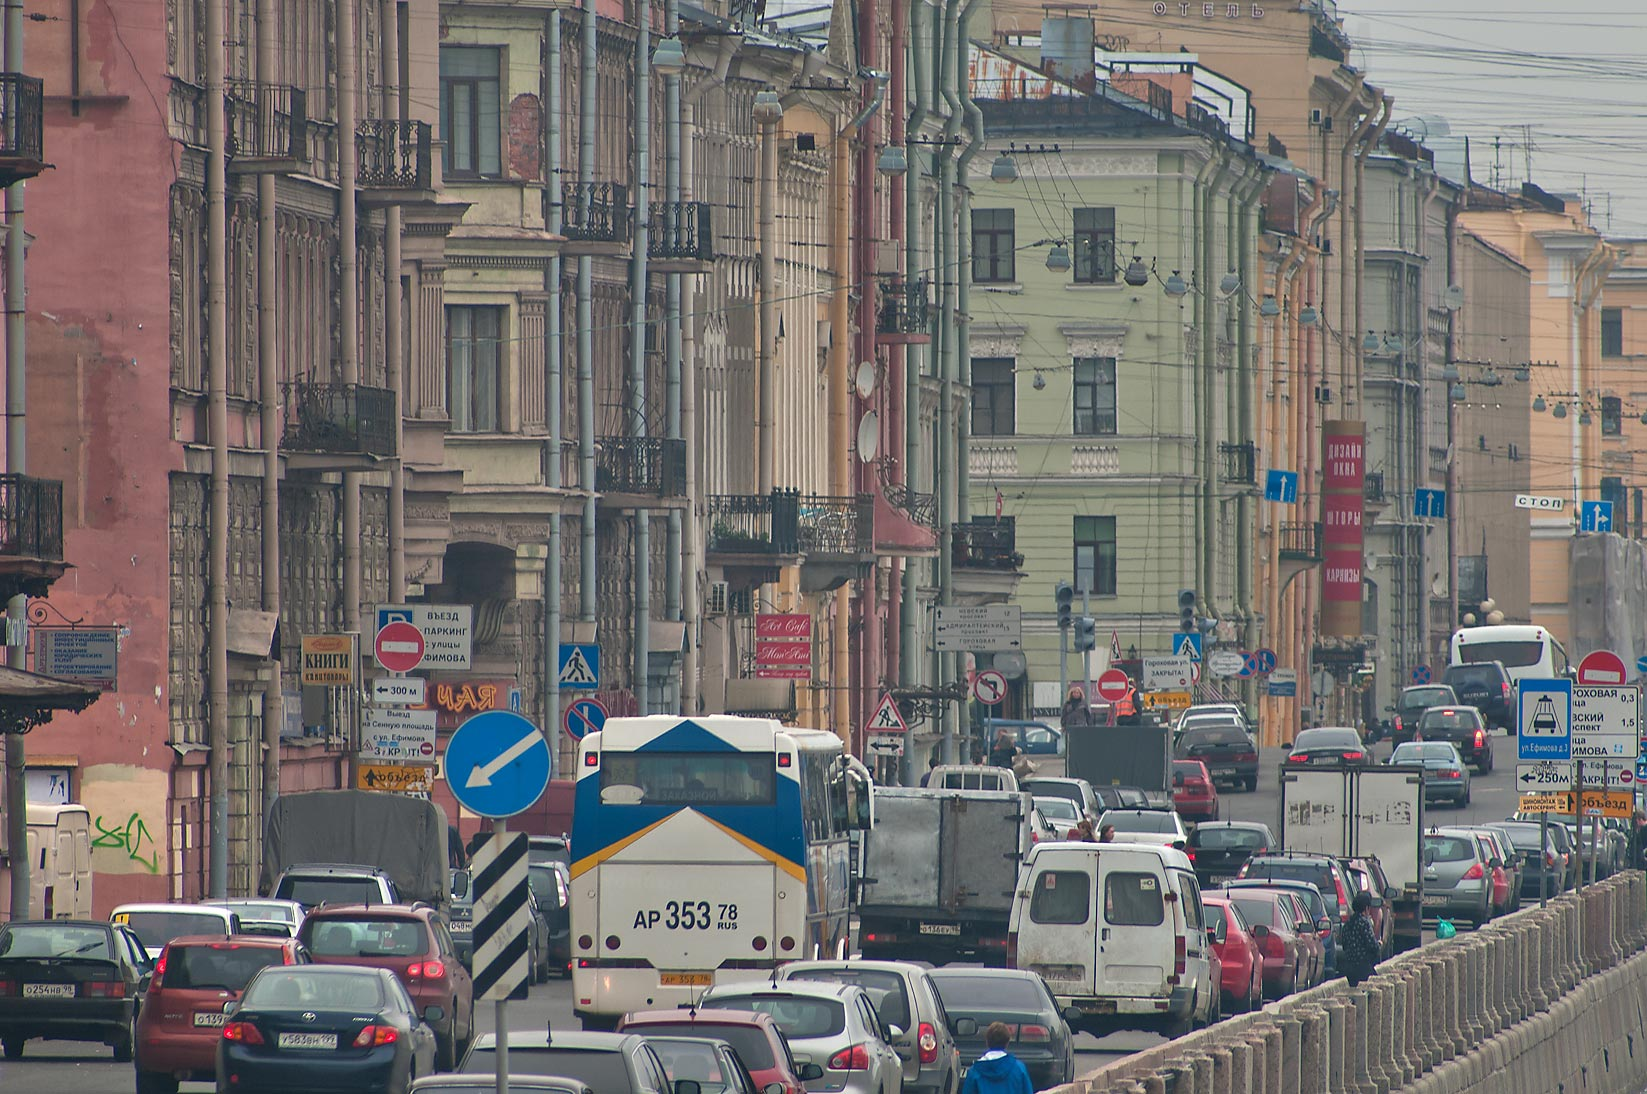 Traffic near Fontanka River, near Voznesensky Prospect. St.Petersburg, Russia